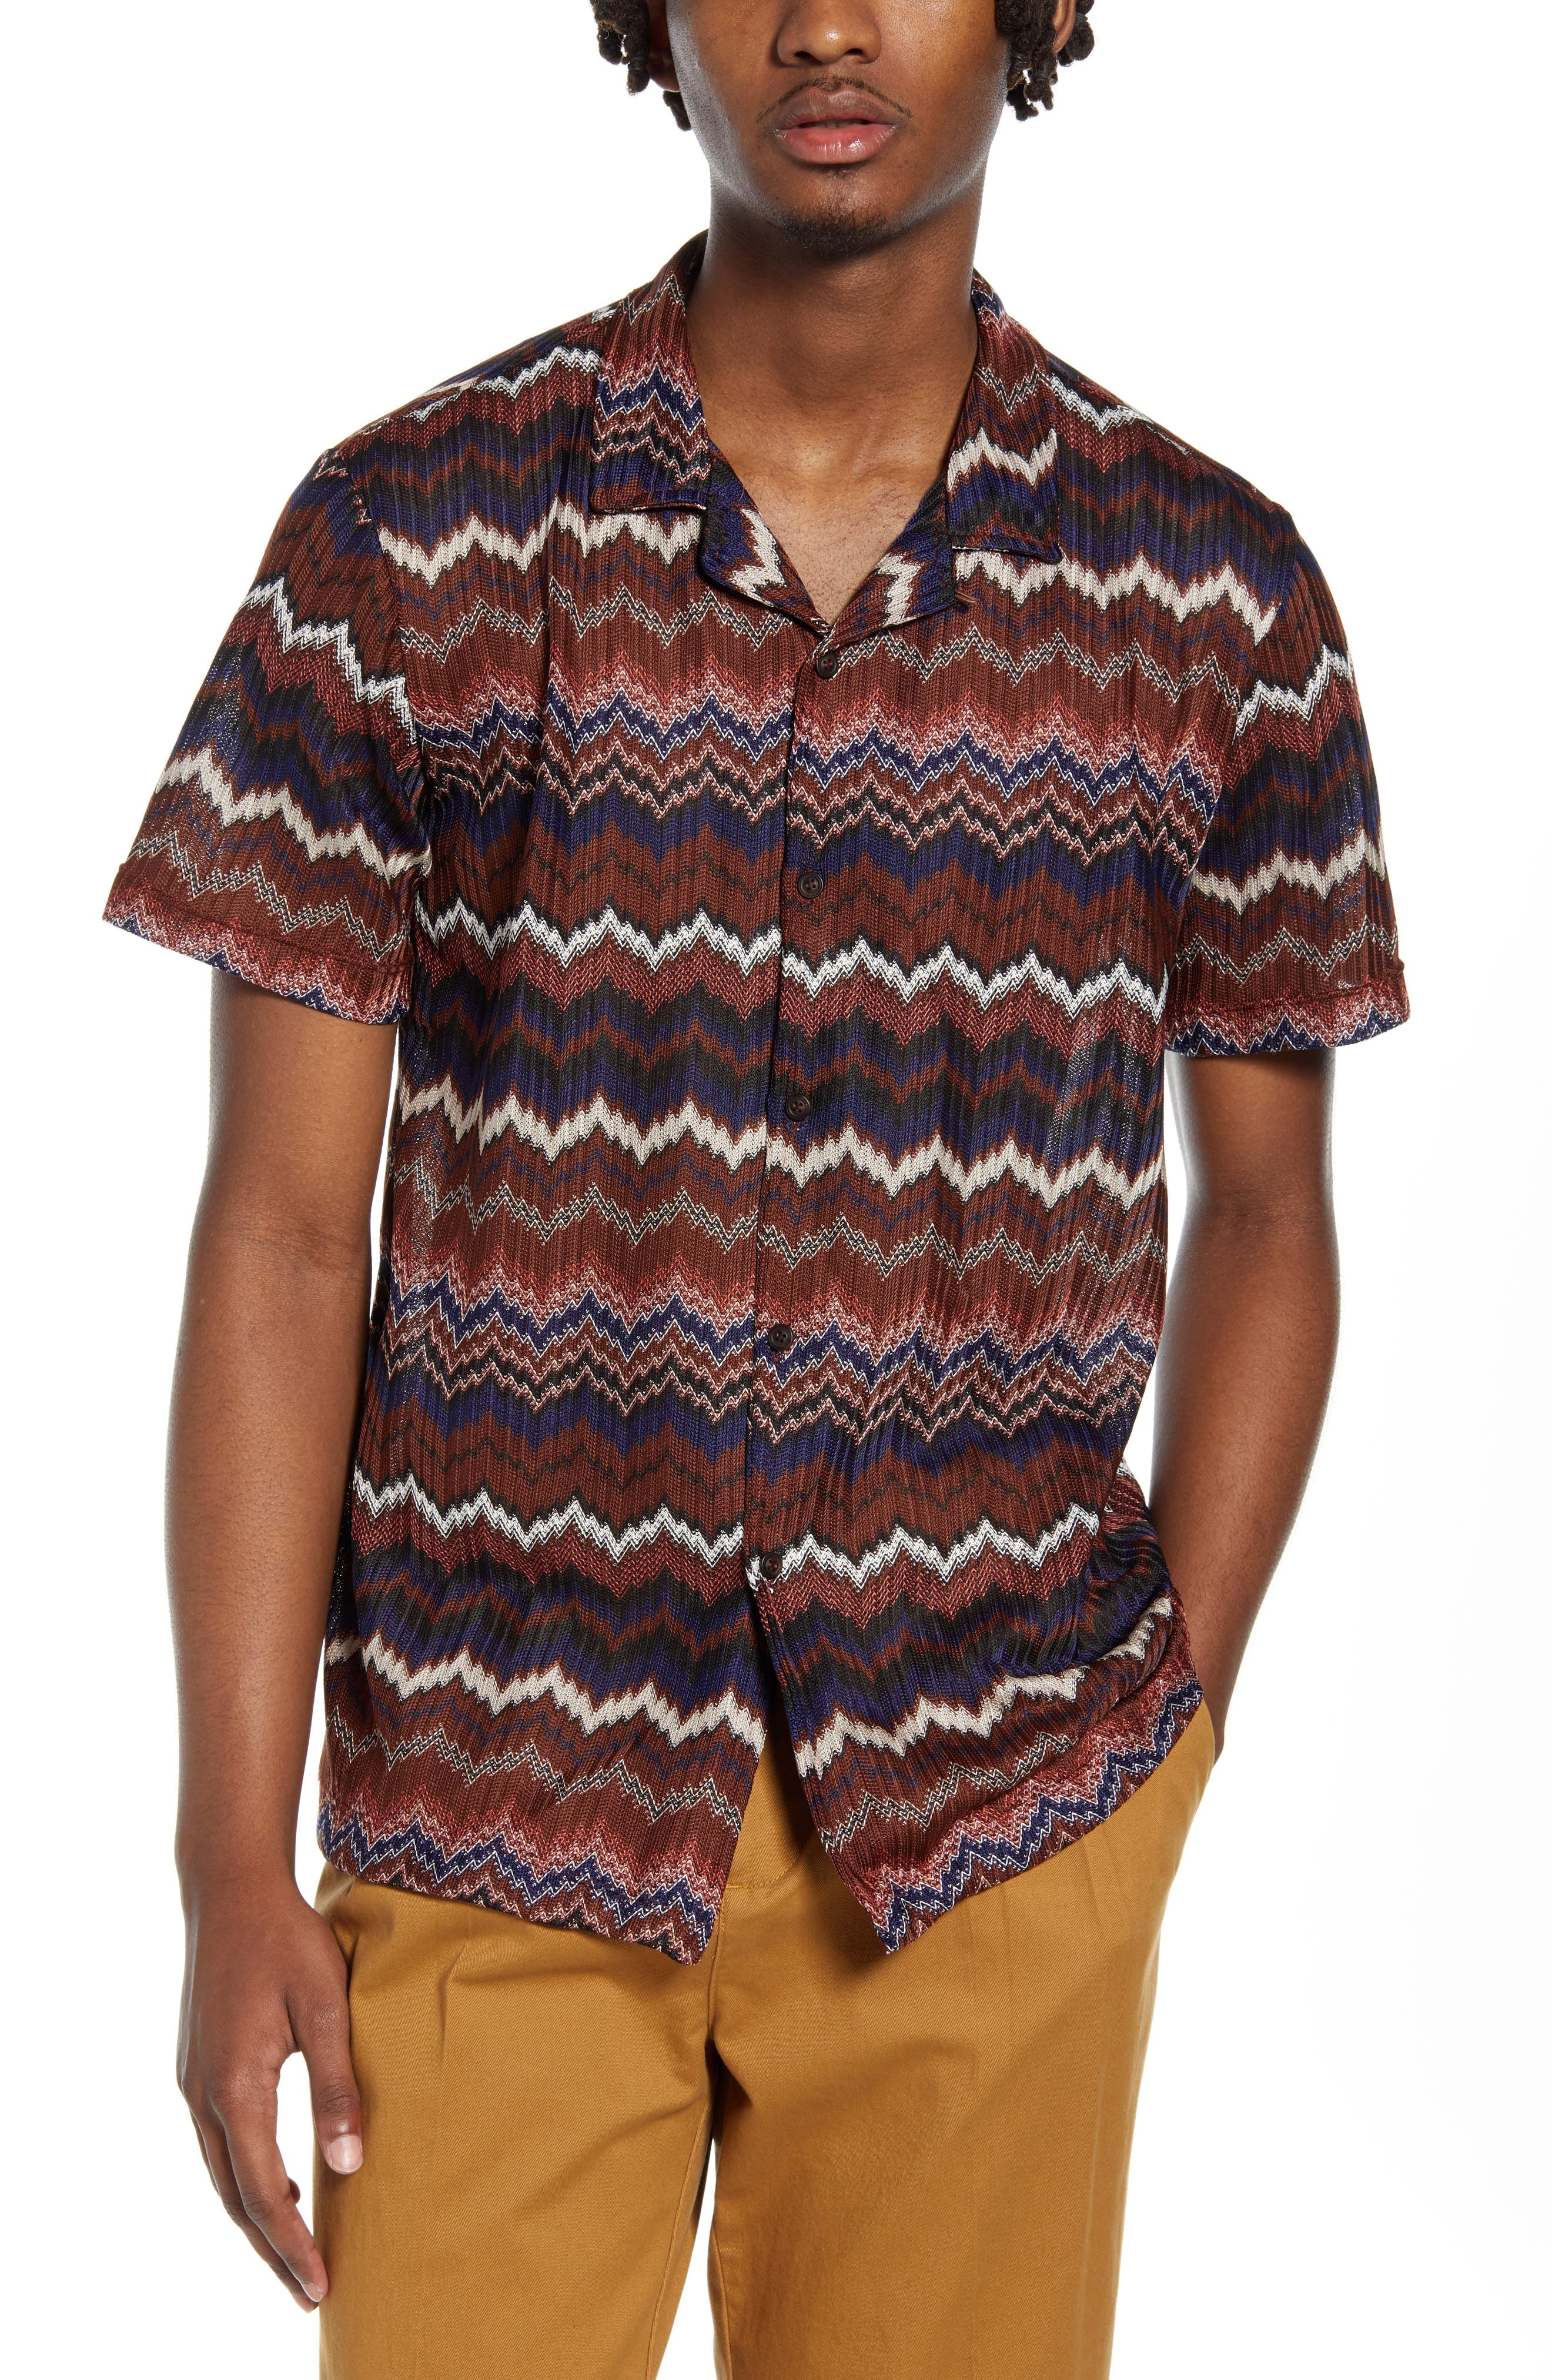 1960s -1970s Men's Clothing Mens Topman Chevron Short Sleeve Button-Up Knit Camp Shirt Size Small - Brown $70.00 AT vintagedancer.com